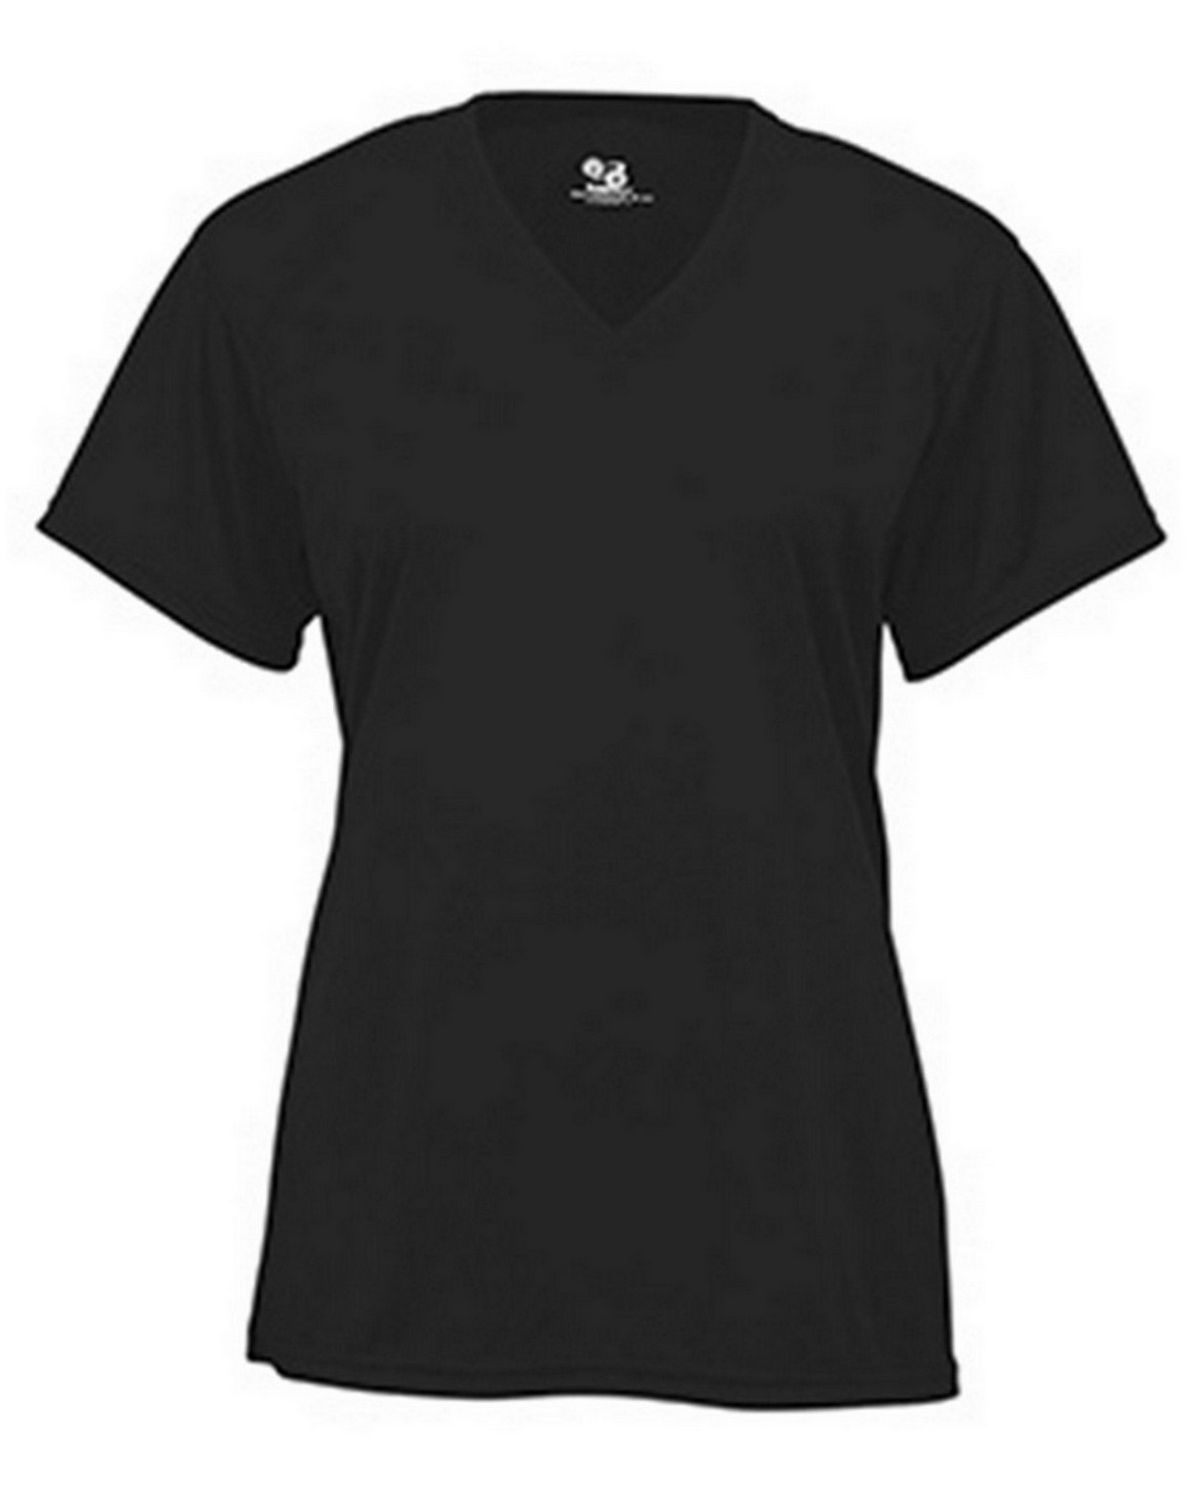 Badger BD4162 Ladies Short Sleeve Tee - Black - 2X BD4162